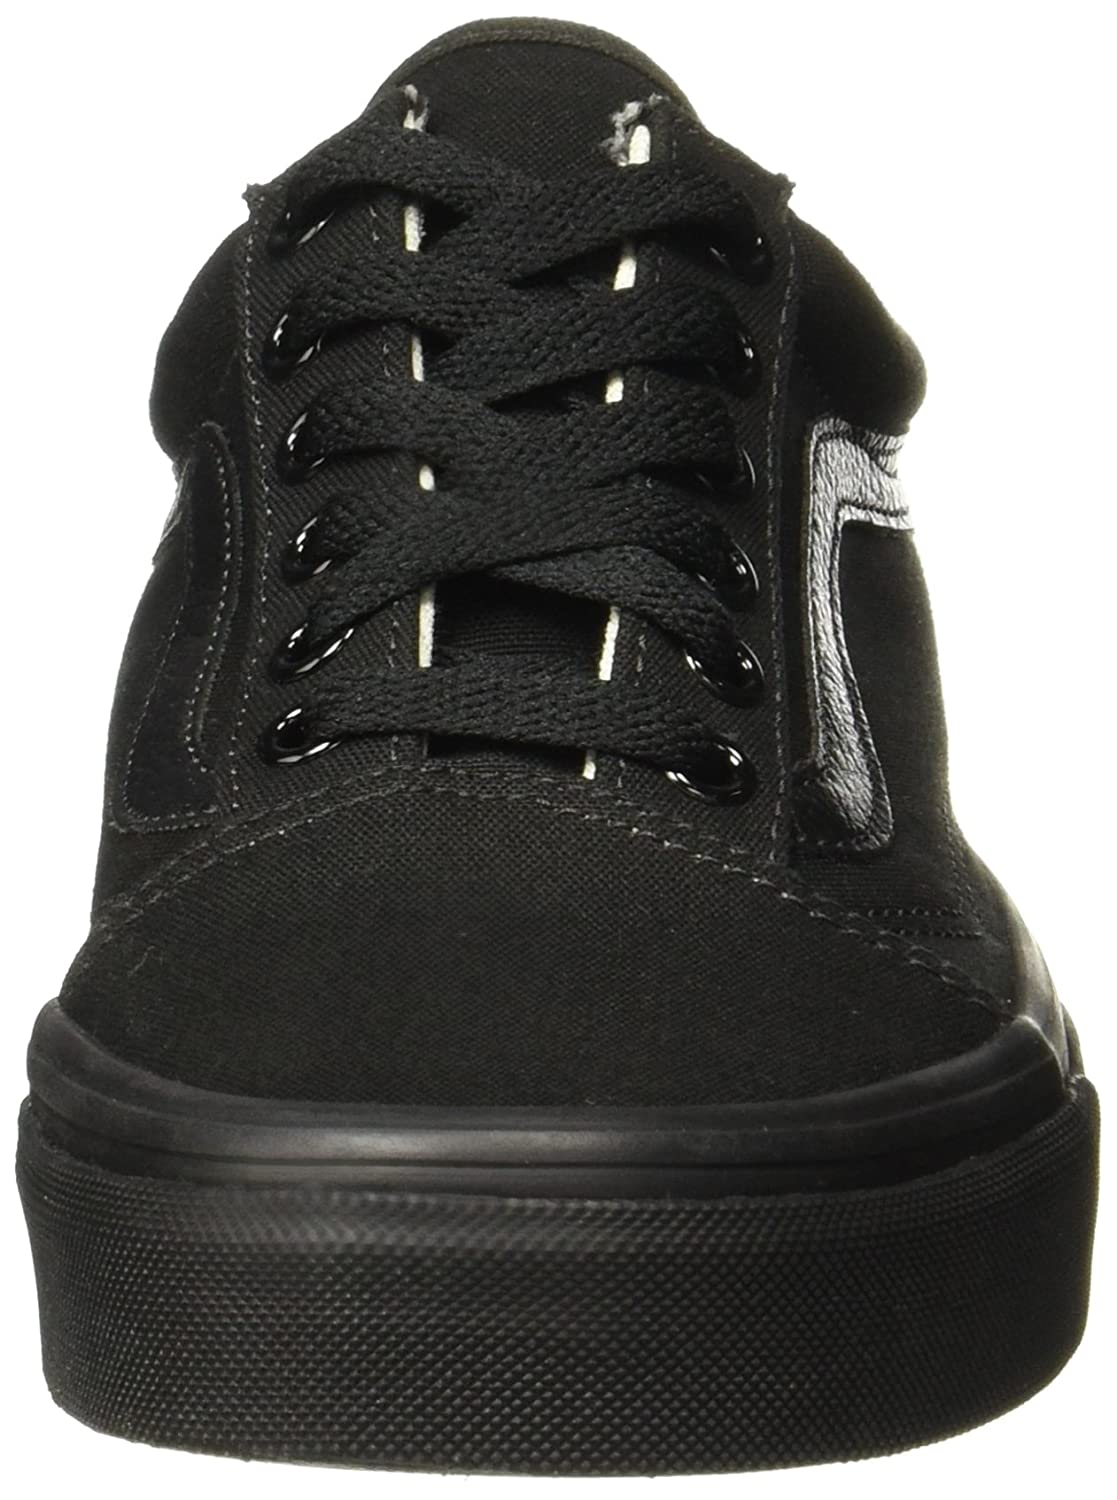 Vans Unisex Old Skool Classic Skate Shoes B01M128MA5 / 7.5 M US Women / B01M128MA5 6 M US Men|Black/Black 662e27